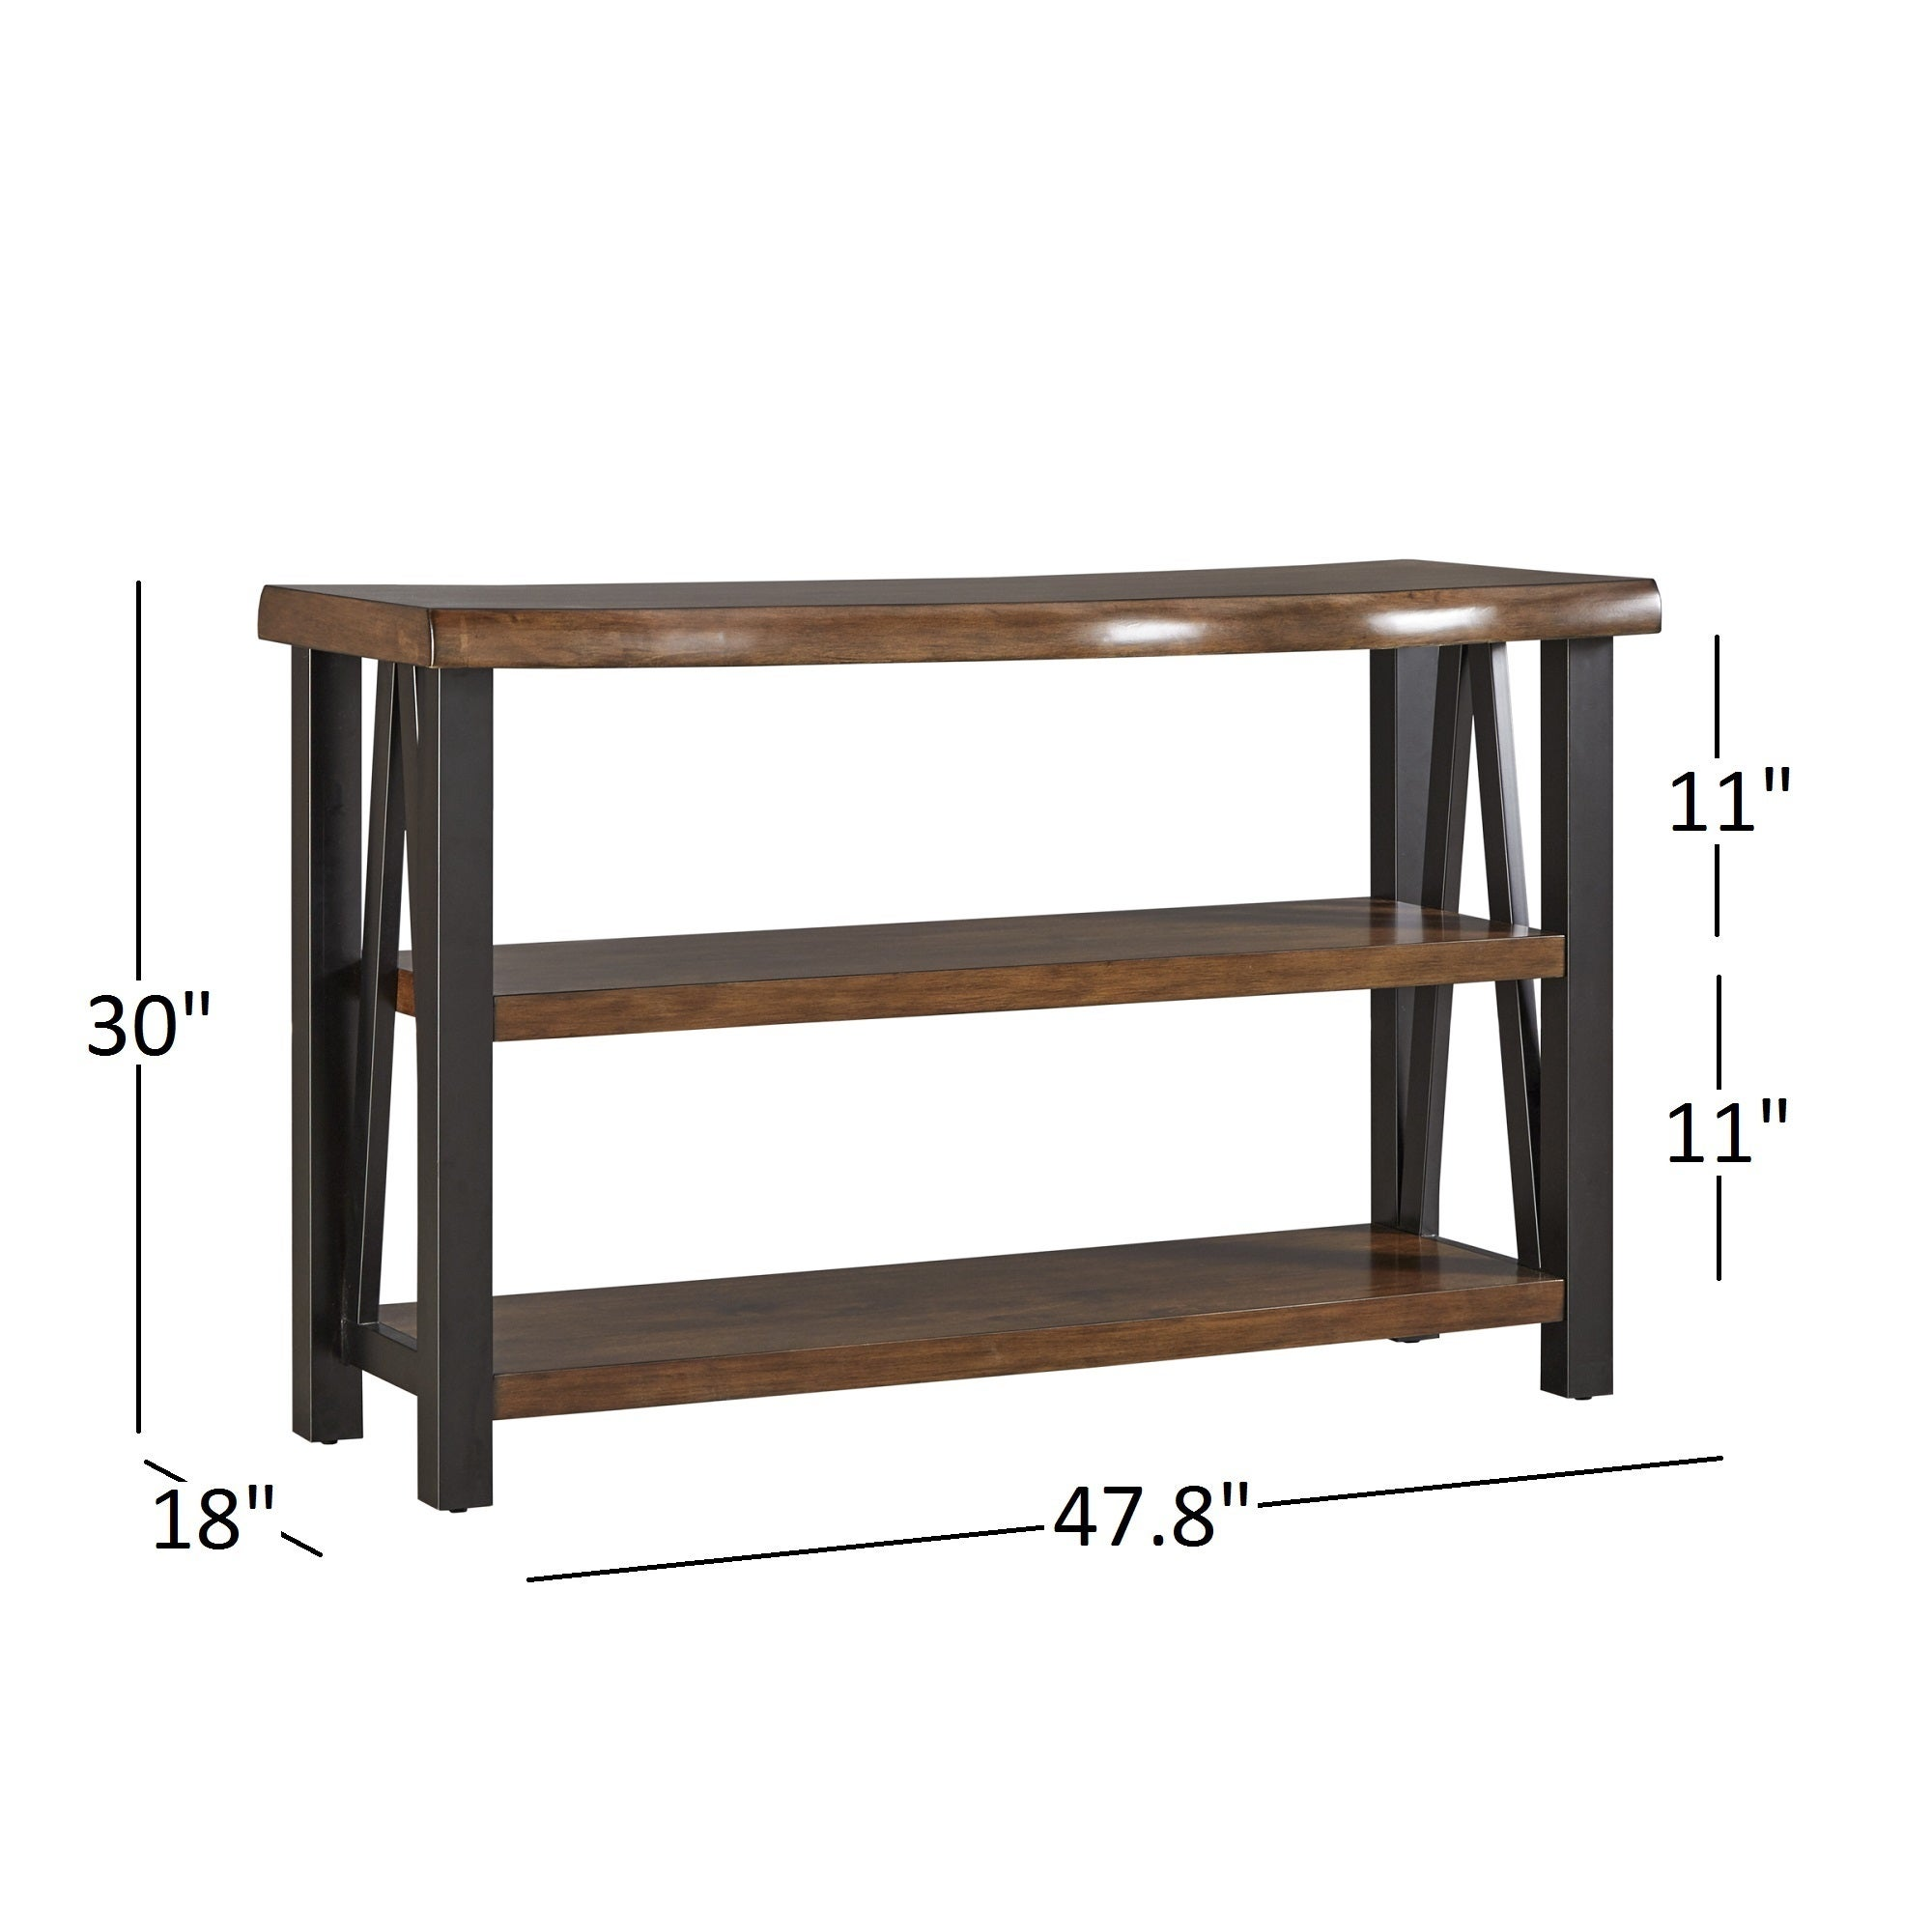 Wood And Metal Aiden Console Table: Sofa Table Metal Cole Grey Wood And Metal Console Table